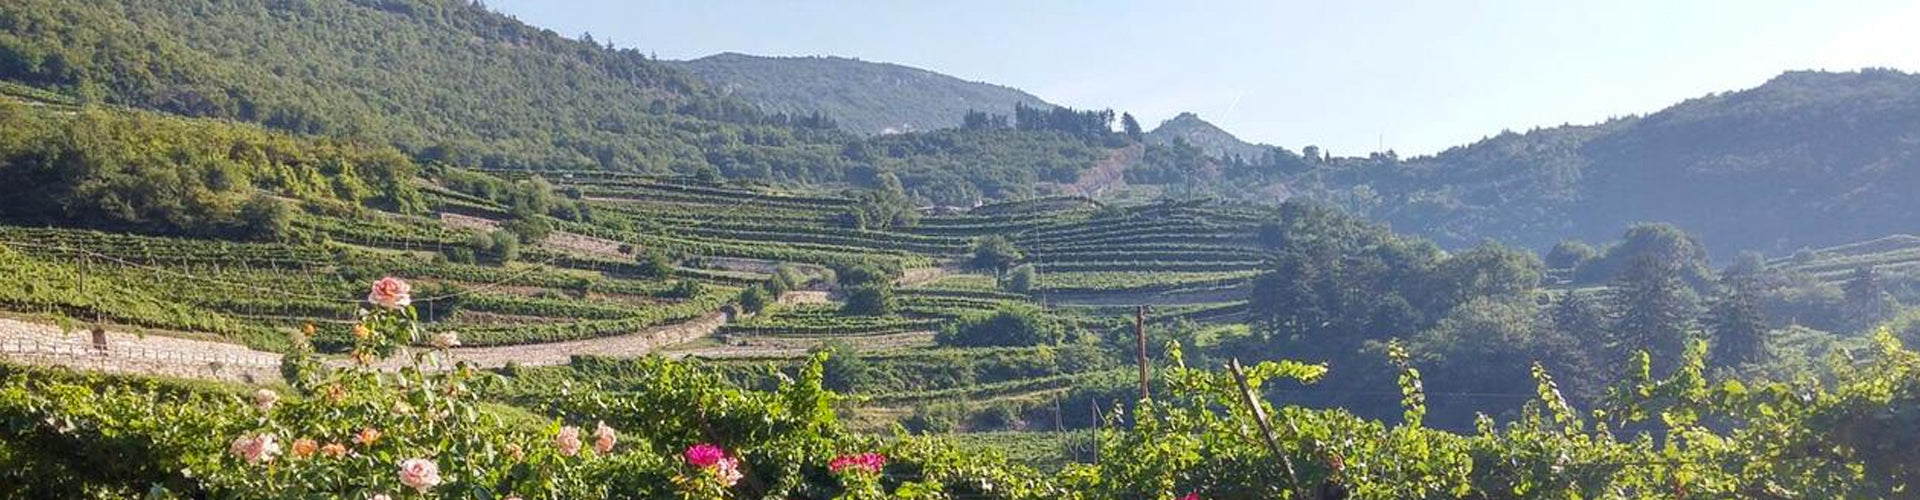 Masi Vineyards in the Veneto region of norther Italy